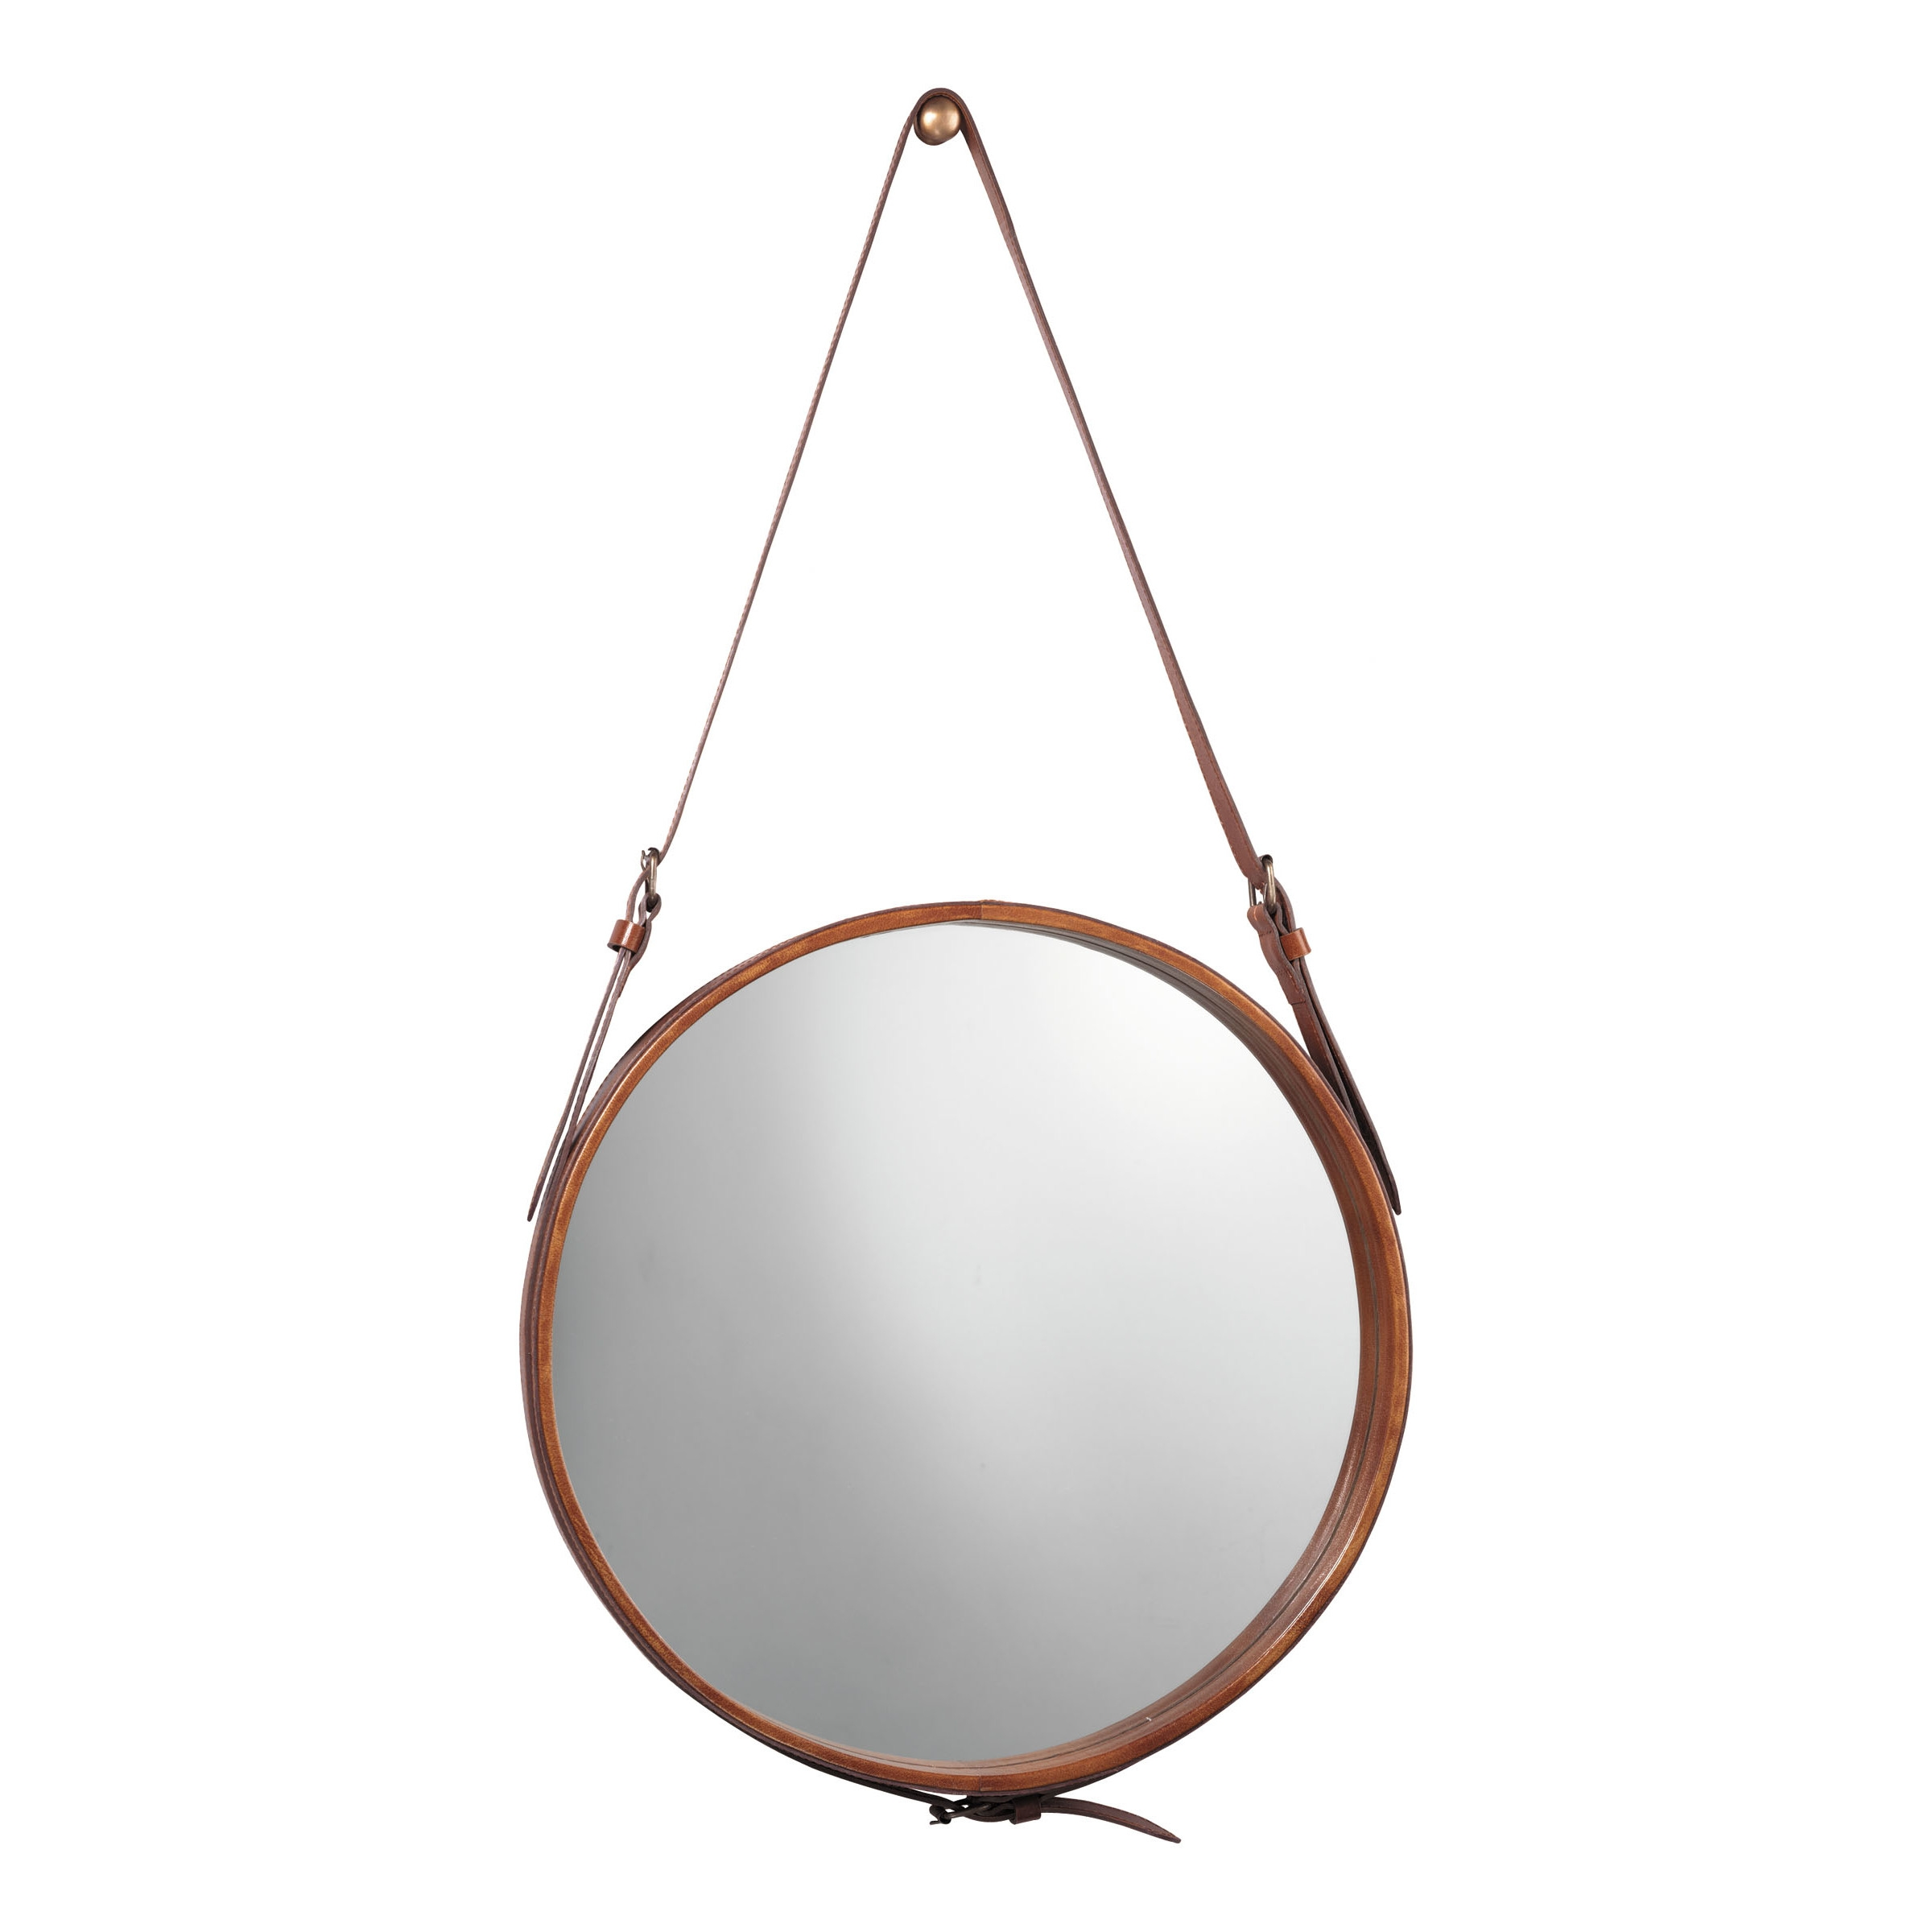 Hereford Leather Wall Mirror Reviews Joss Main Regarding Leather Wall Mirrors (Image 7 of 15)